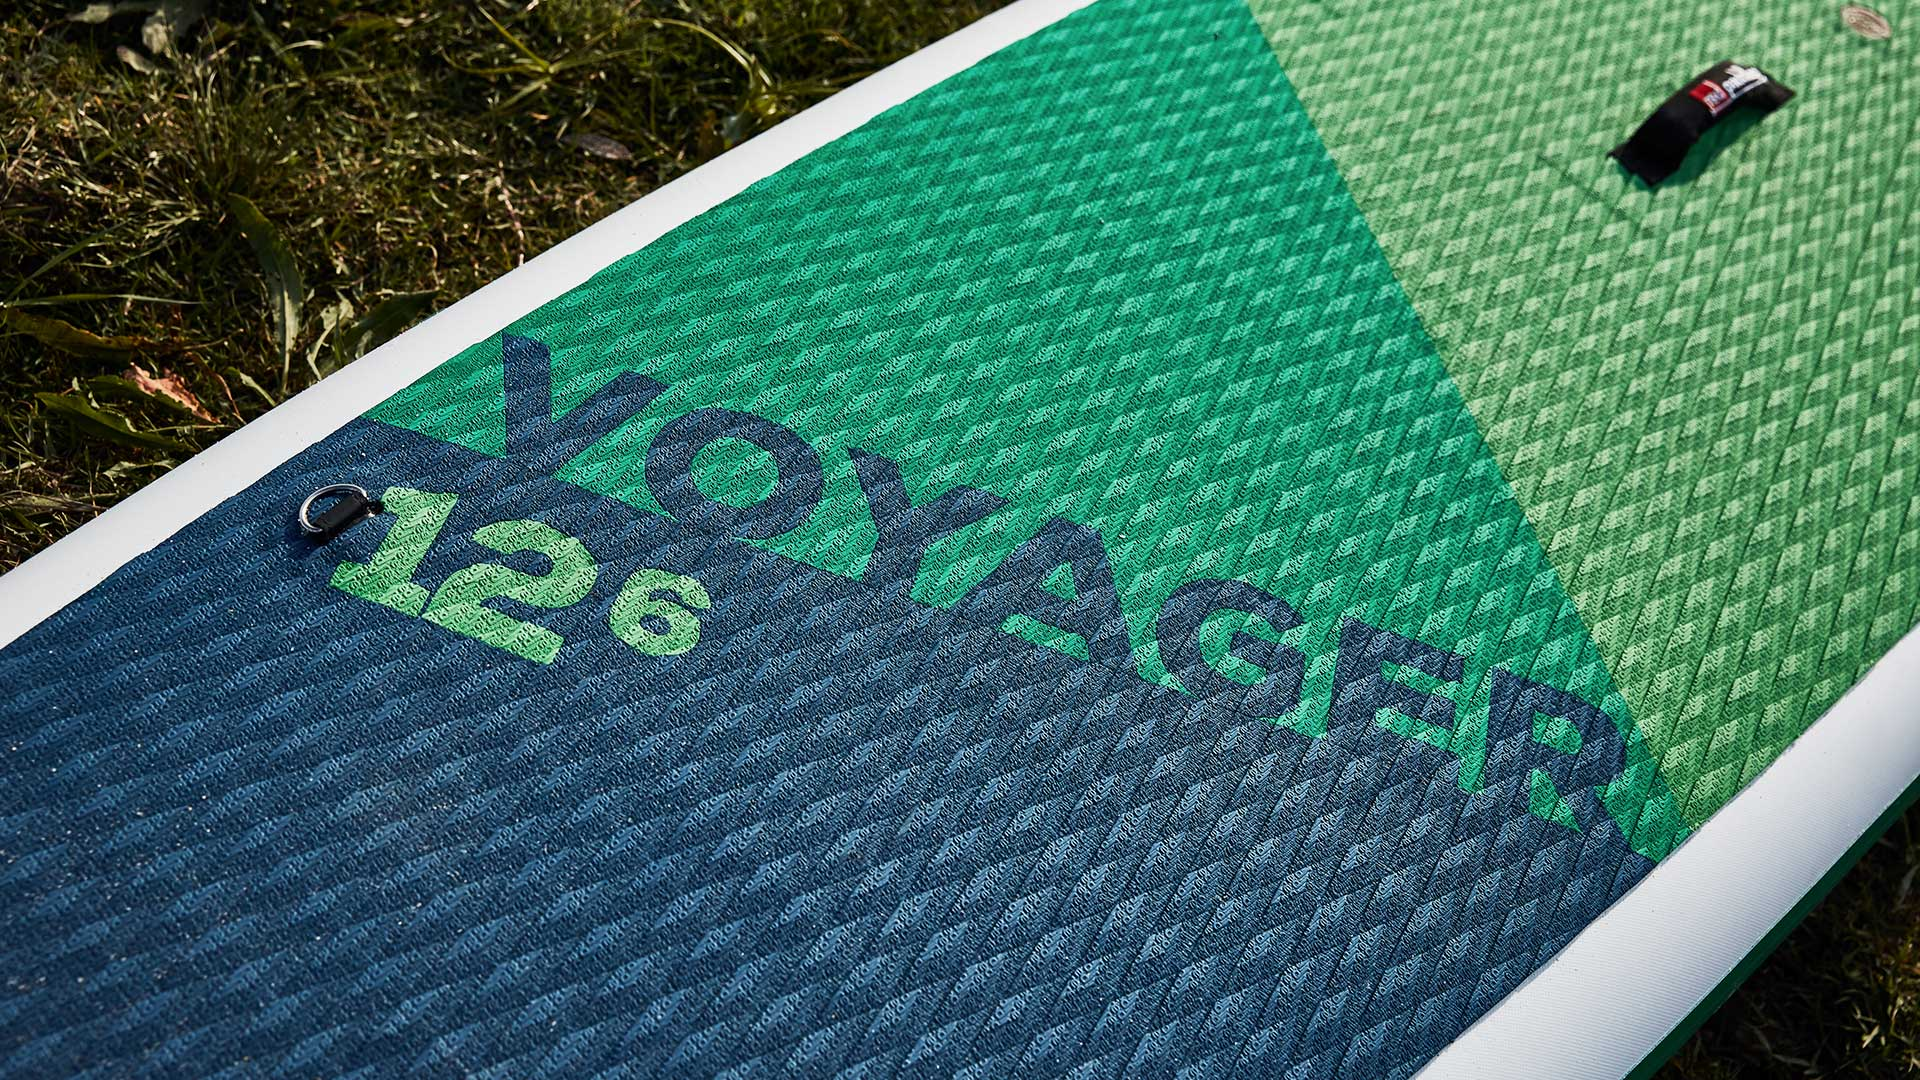 redpaddleco-126-voyager-inflatable-paddle-board-desktop-gallery-deckpad